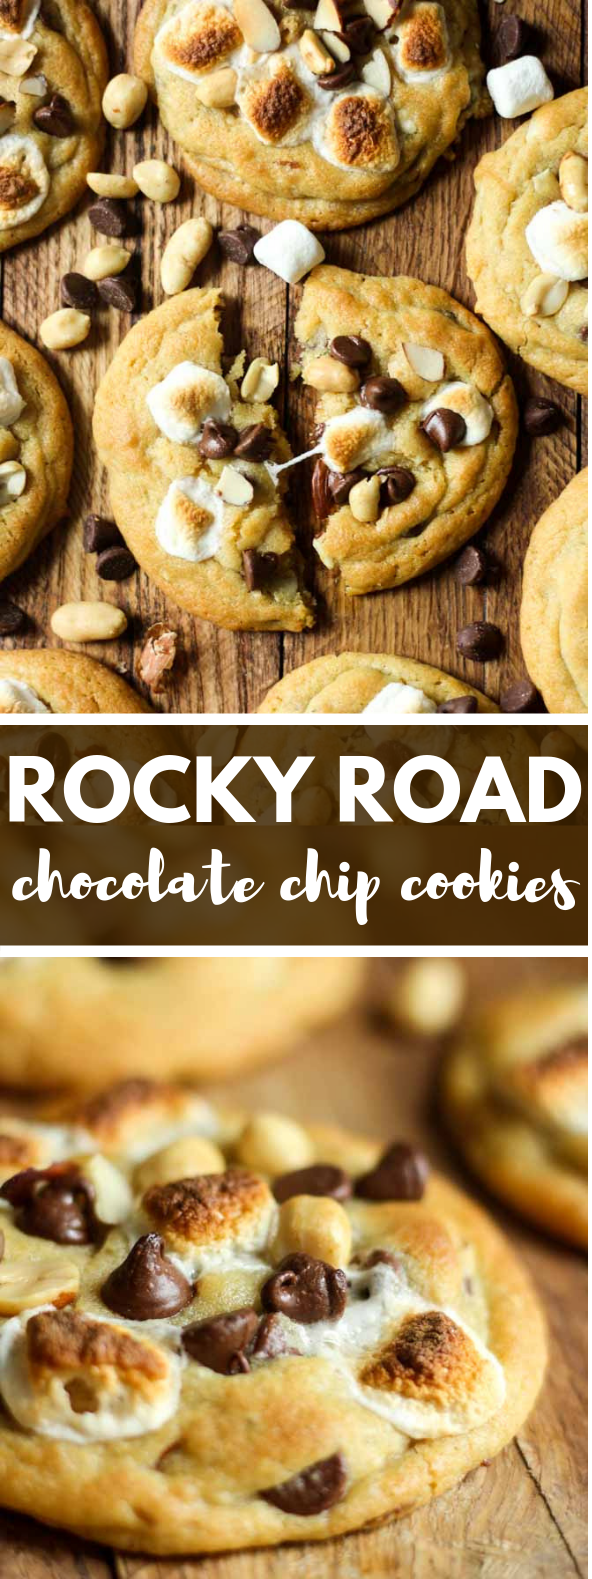 ROCKY ROAD COOKIES #dessert #chocolate